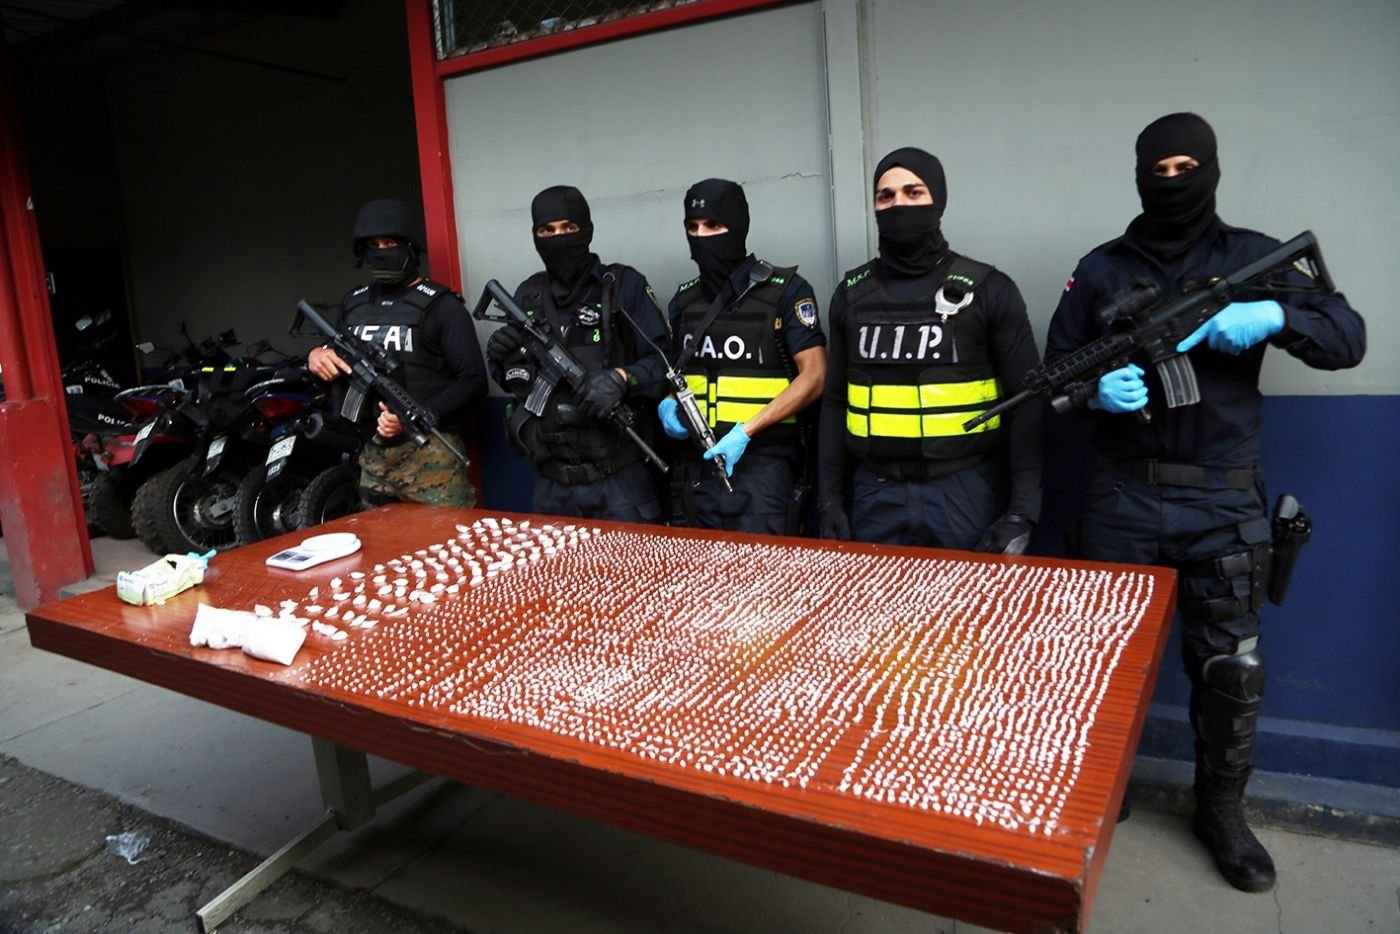 Costa Rica's Special Operational Force Cracks Down on Domestic Drug Dealing